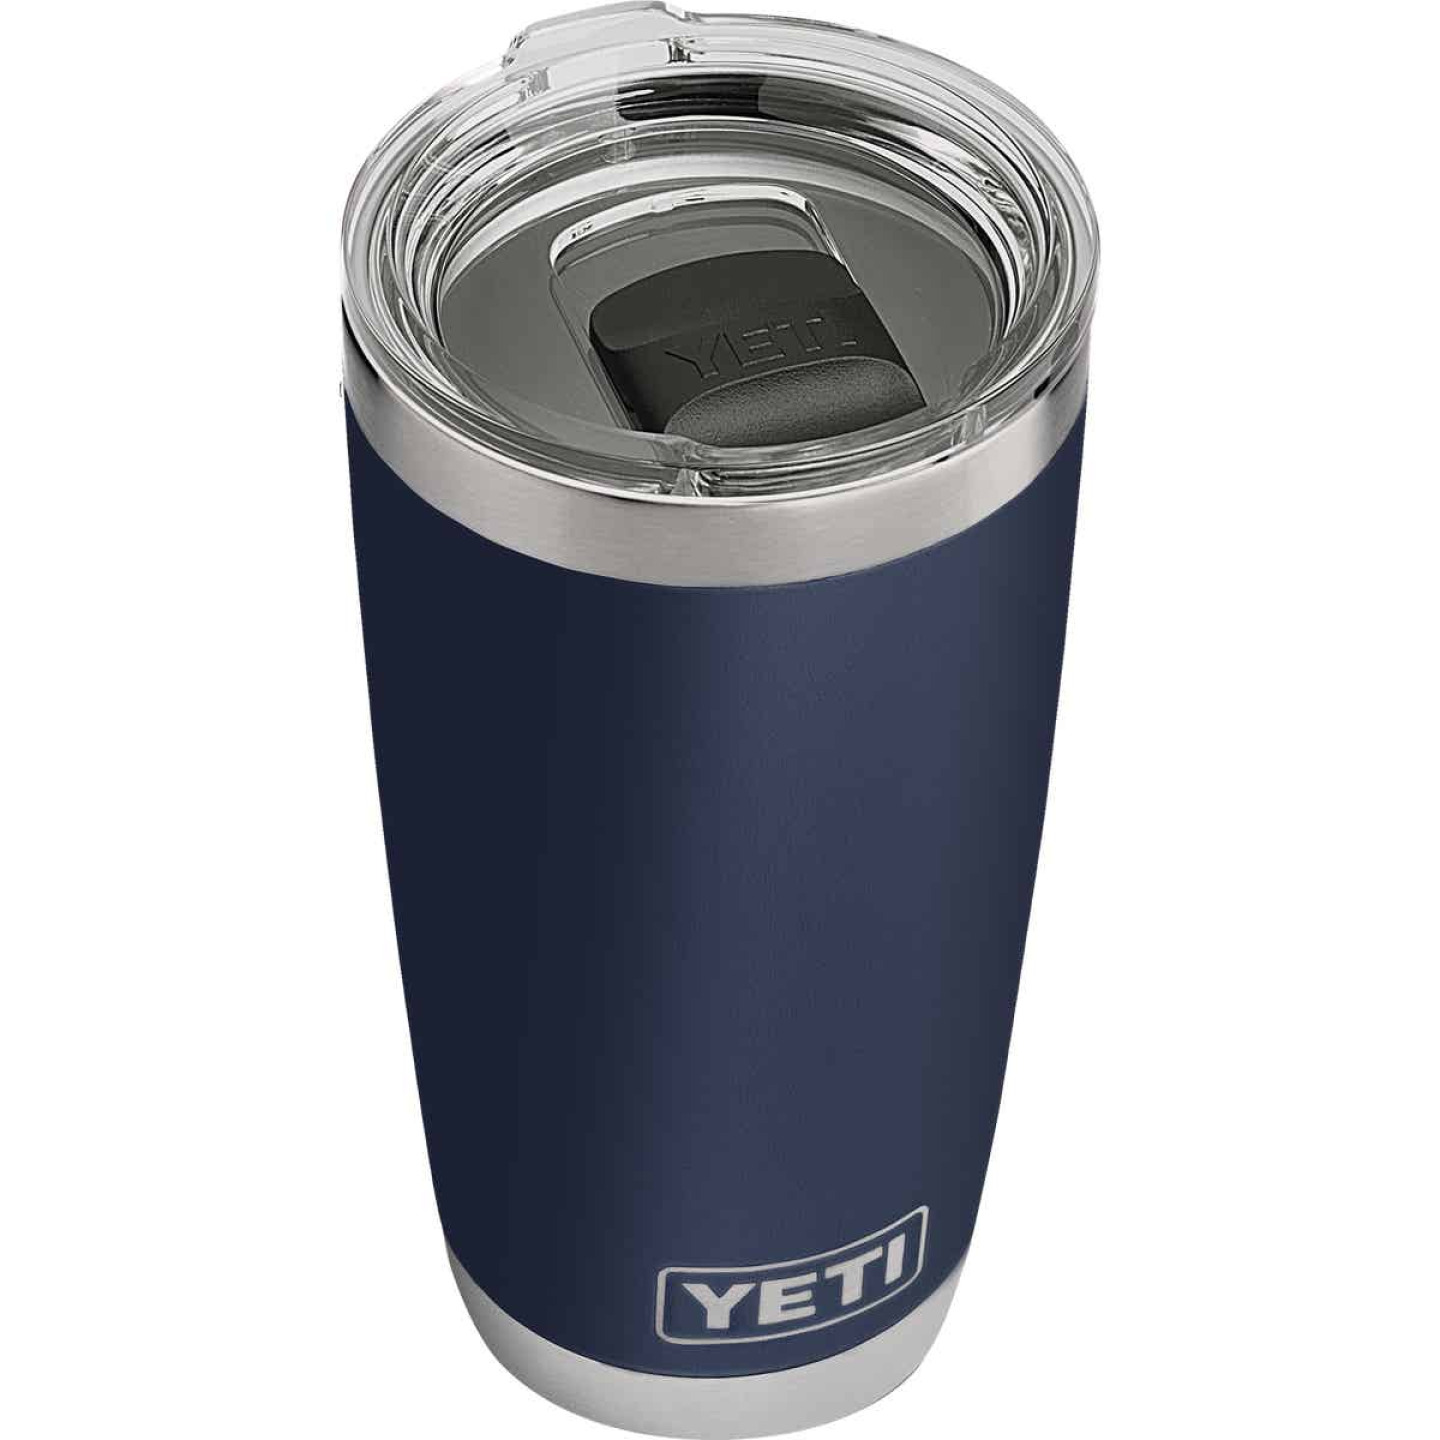 Yeti Rambler 20 Oz. Navy Blue Stainless Steel Insulated Tumbler with MagSlider Lid Image 1